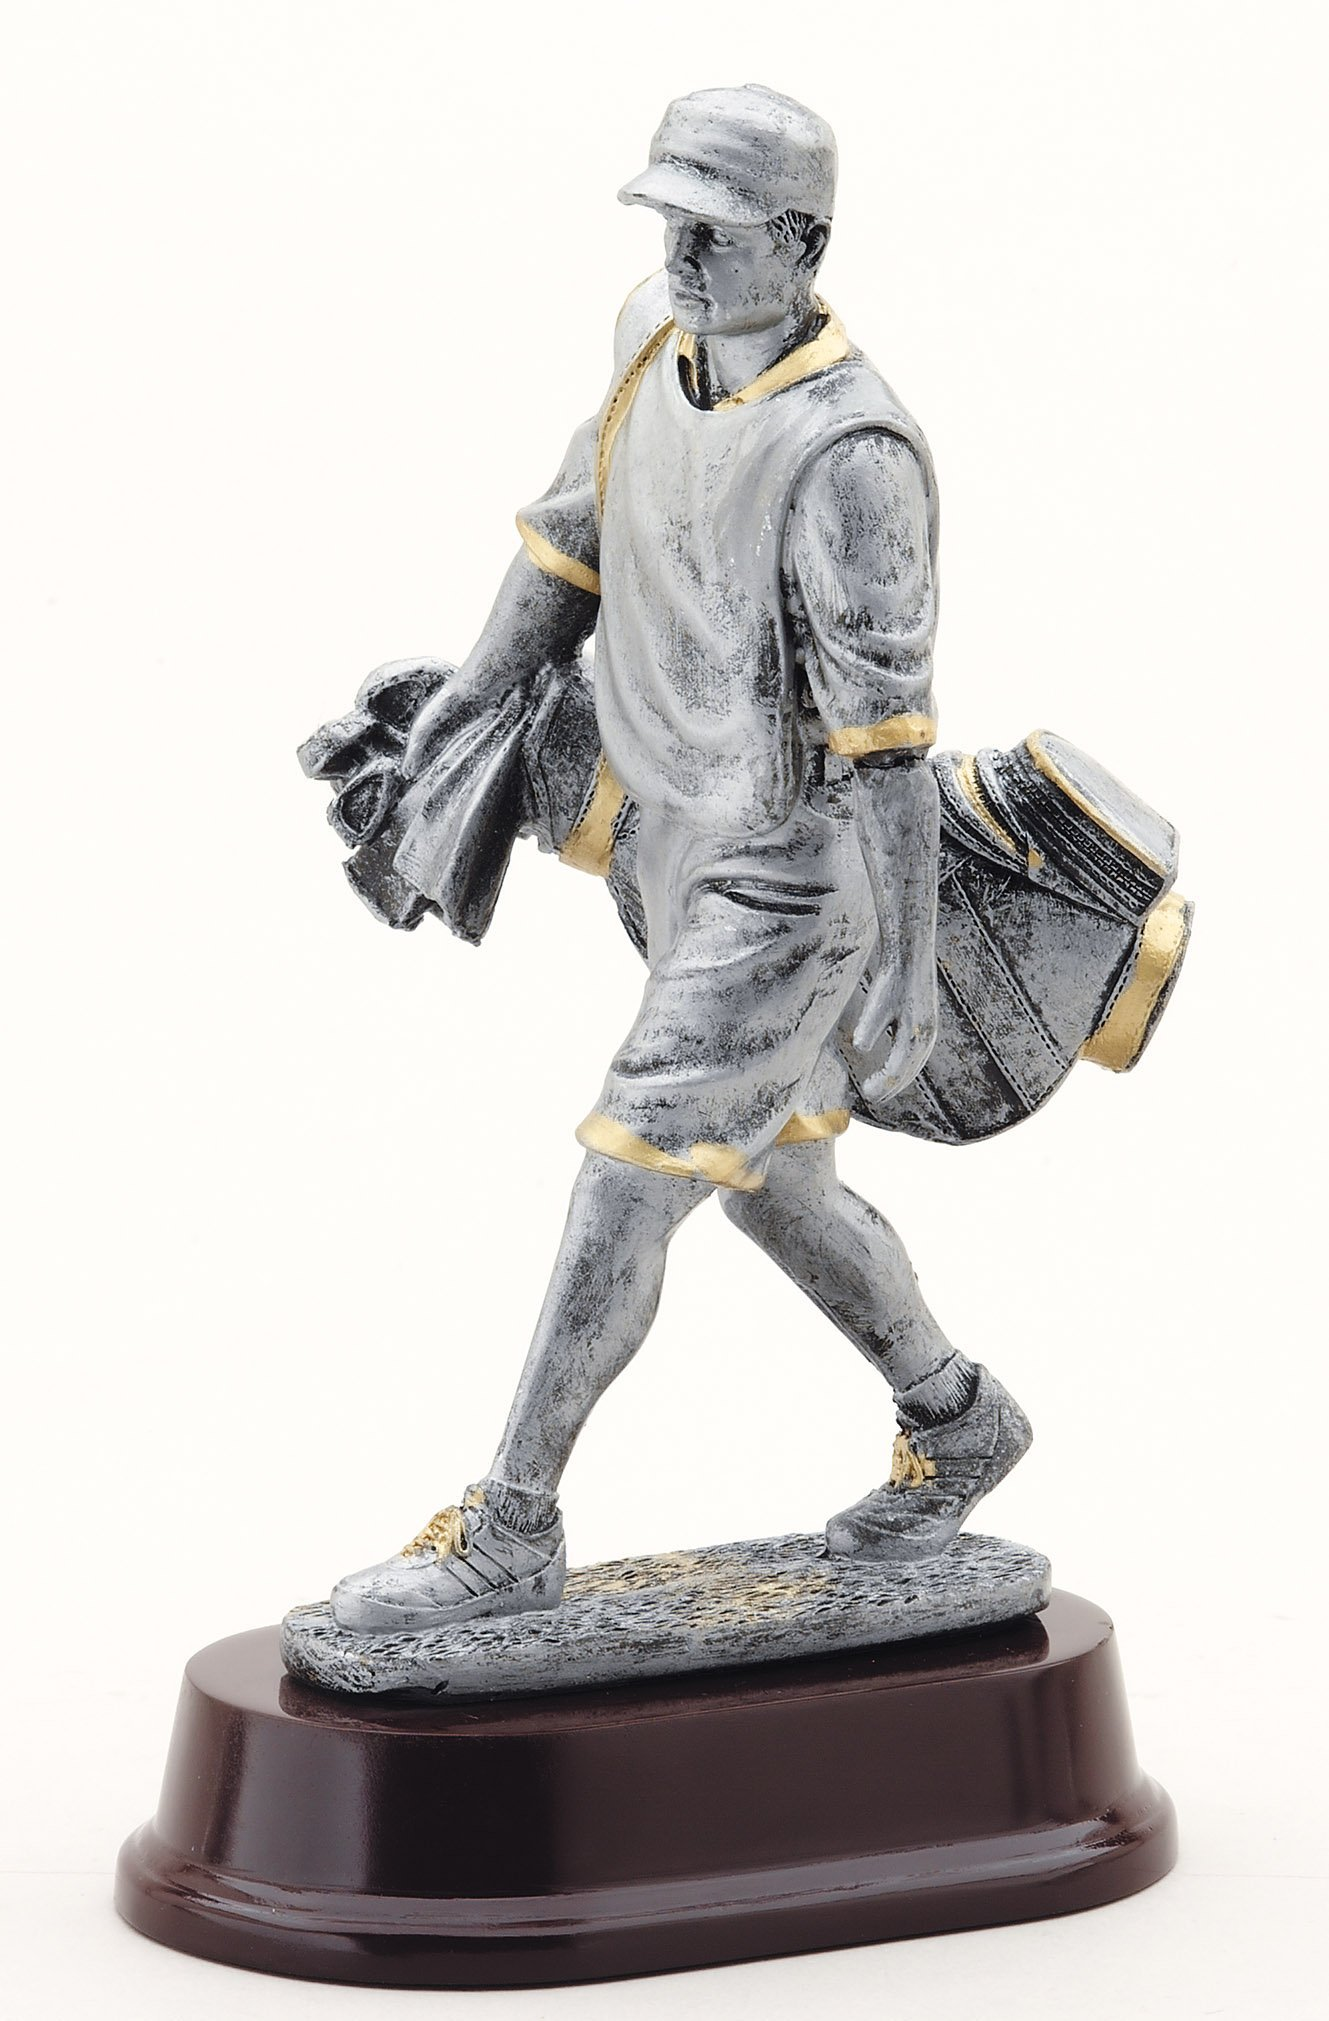 The Trophy Studio Golf Caddie With Bag 9 1/2''tall by The Trophy Studio (Image #1)